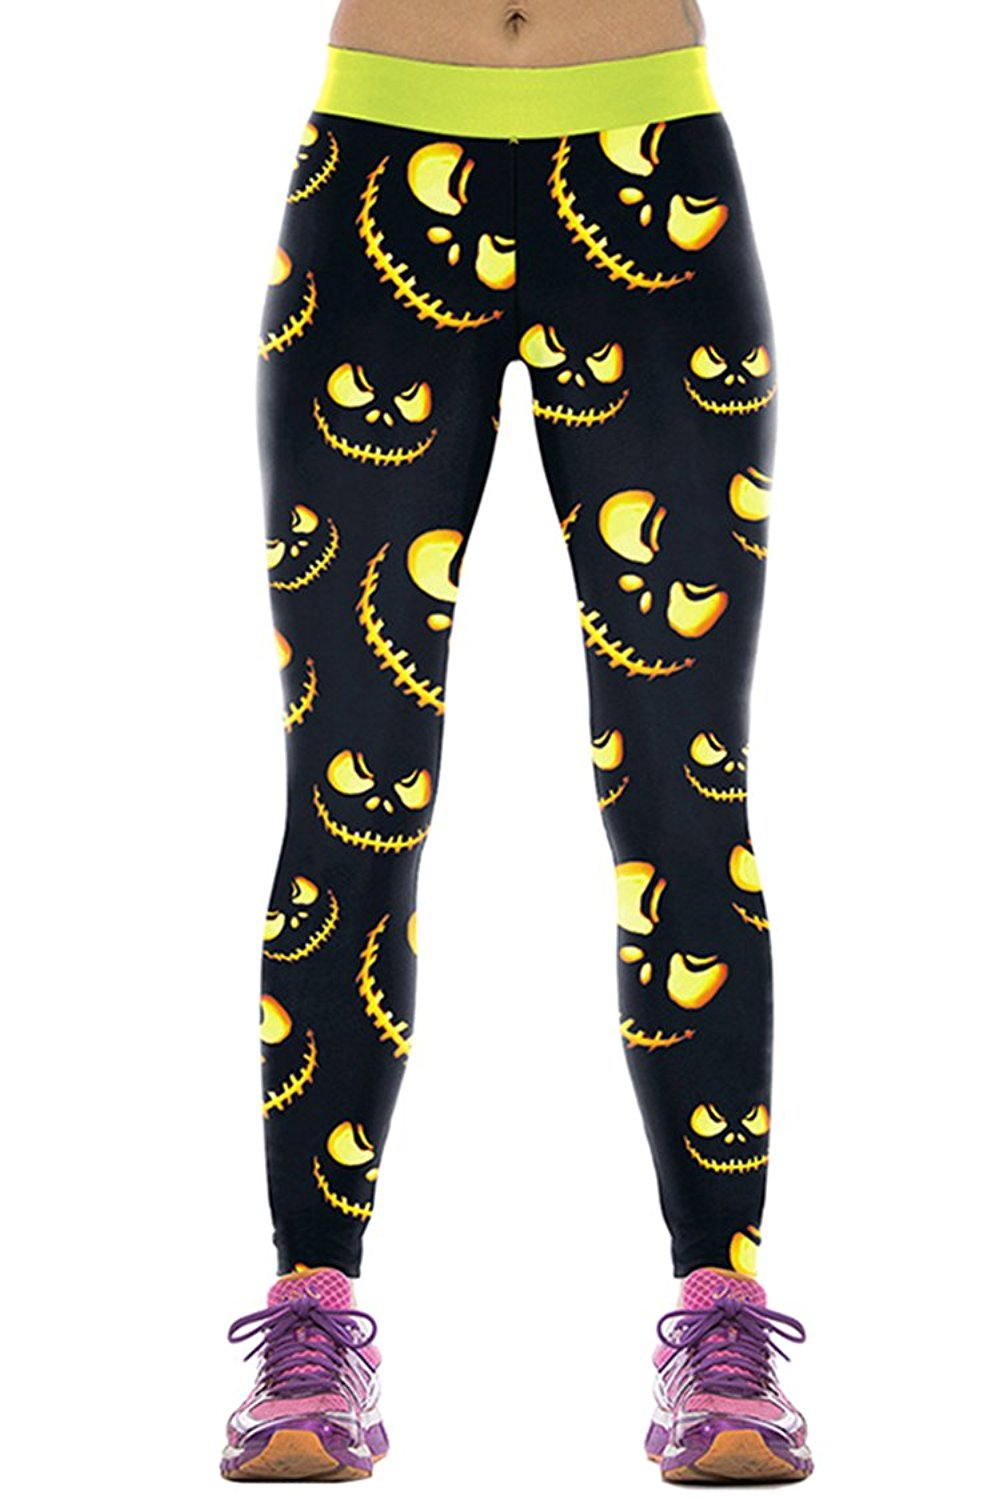 72d6cbab3be35 Get Quotations · COCOLEGGINGS Womens Funny Halloween Costumes Workout  Leggings Tights